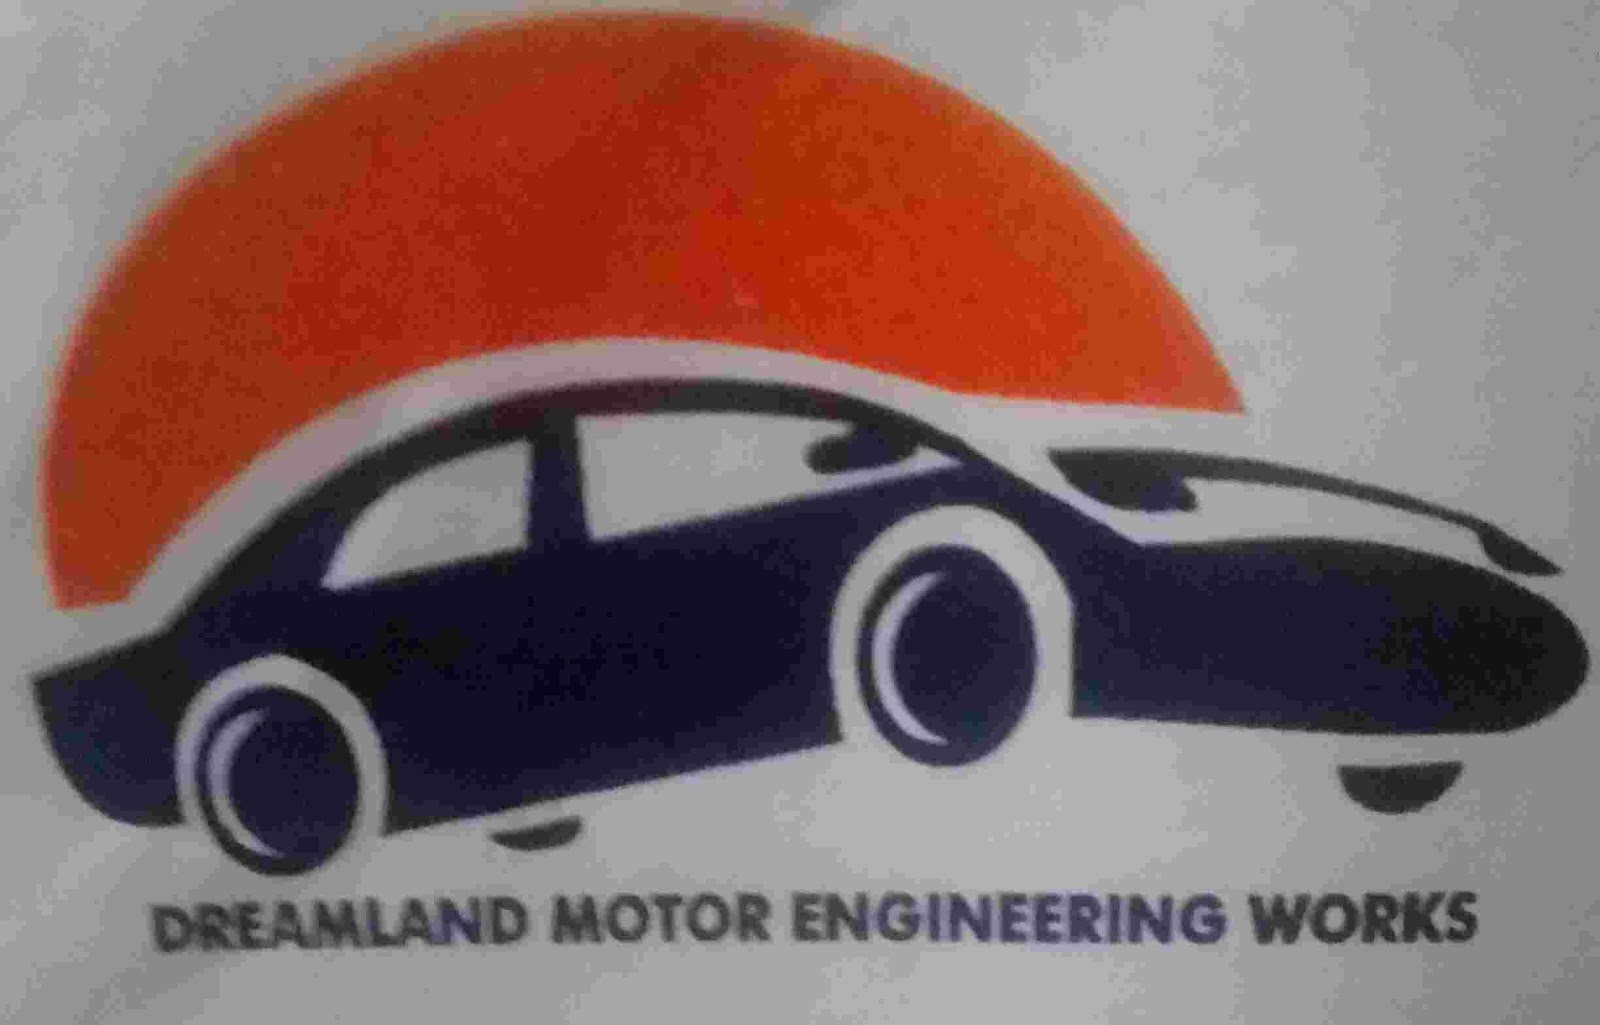 DREAMLAND MOTOR ENGINEERING WORKS